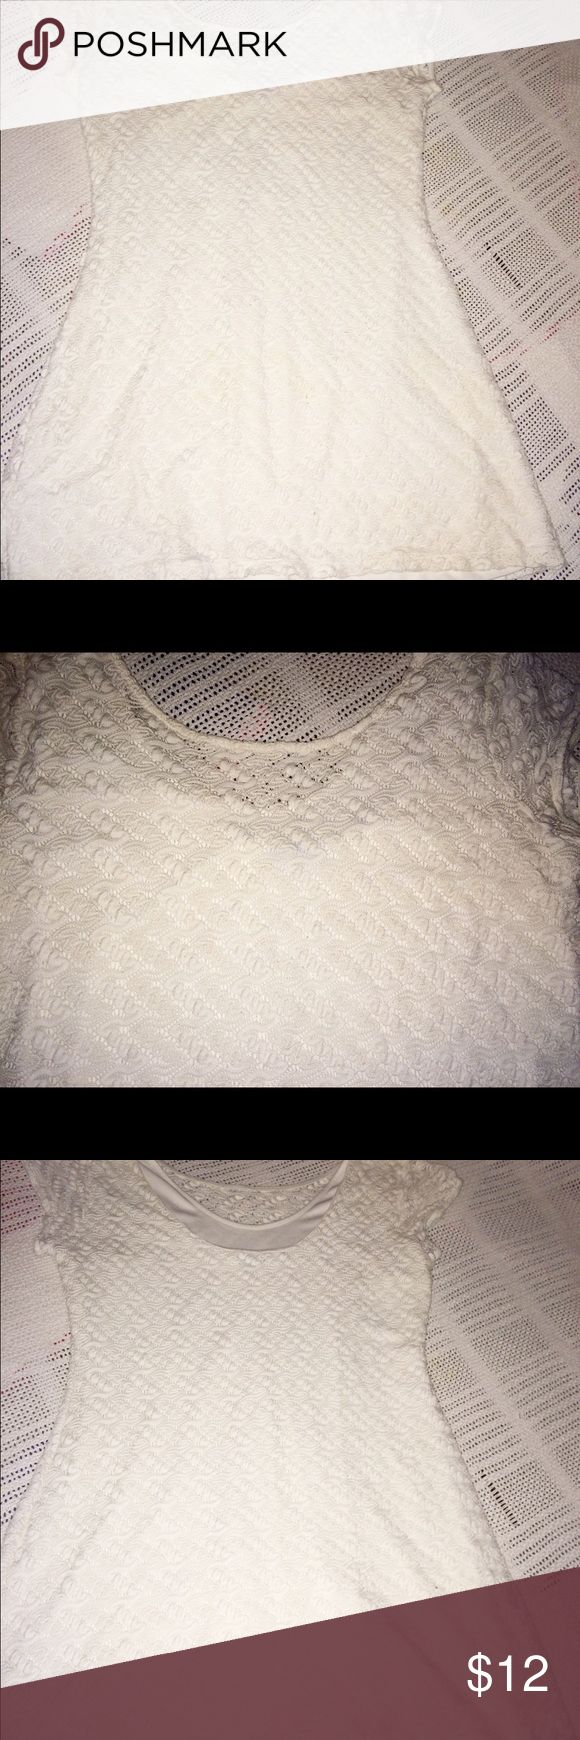 XL CREAM MINI DRESS THAT IS EXTREMELY FLATTERING Worn only once!  Beautiful lace/ crocheted look dress Apt. 9 Dresses Mini